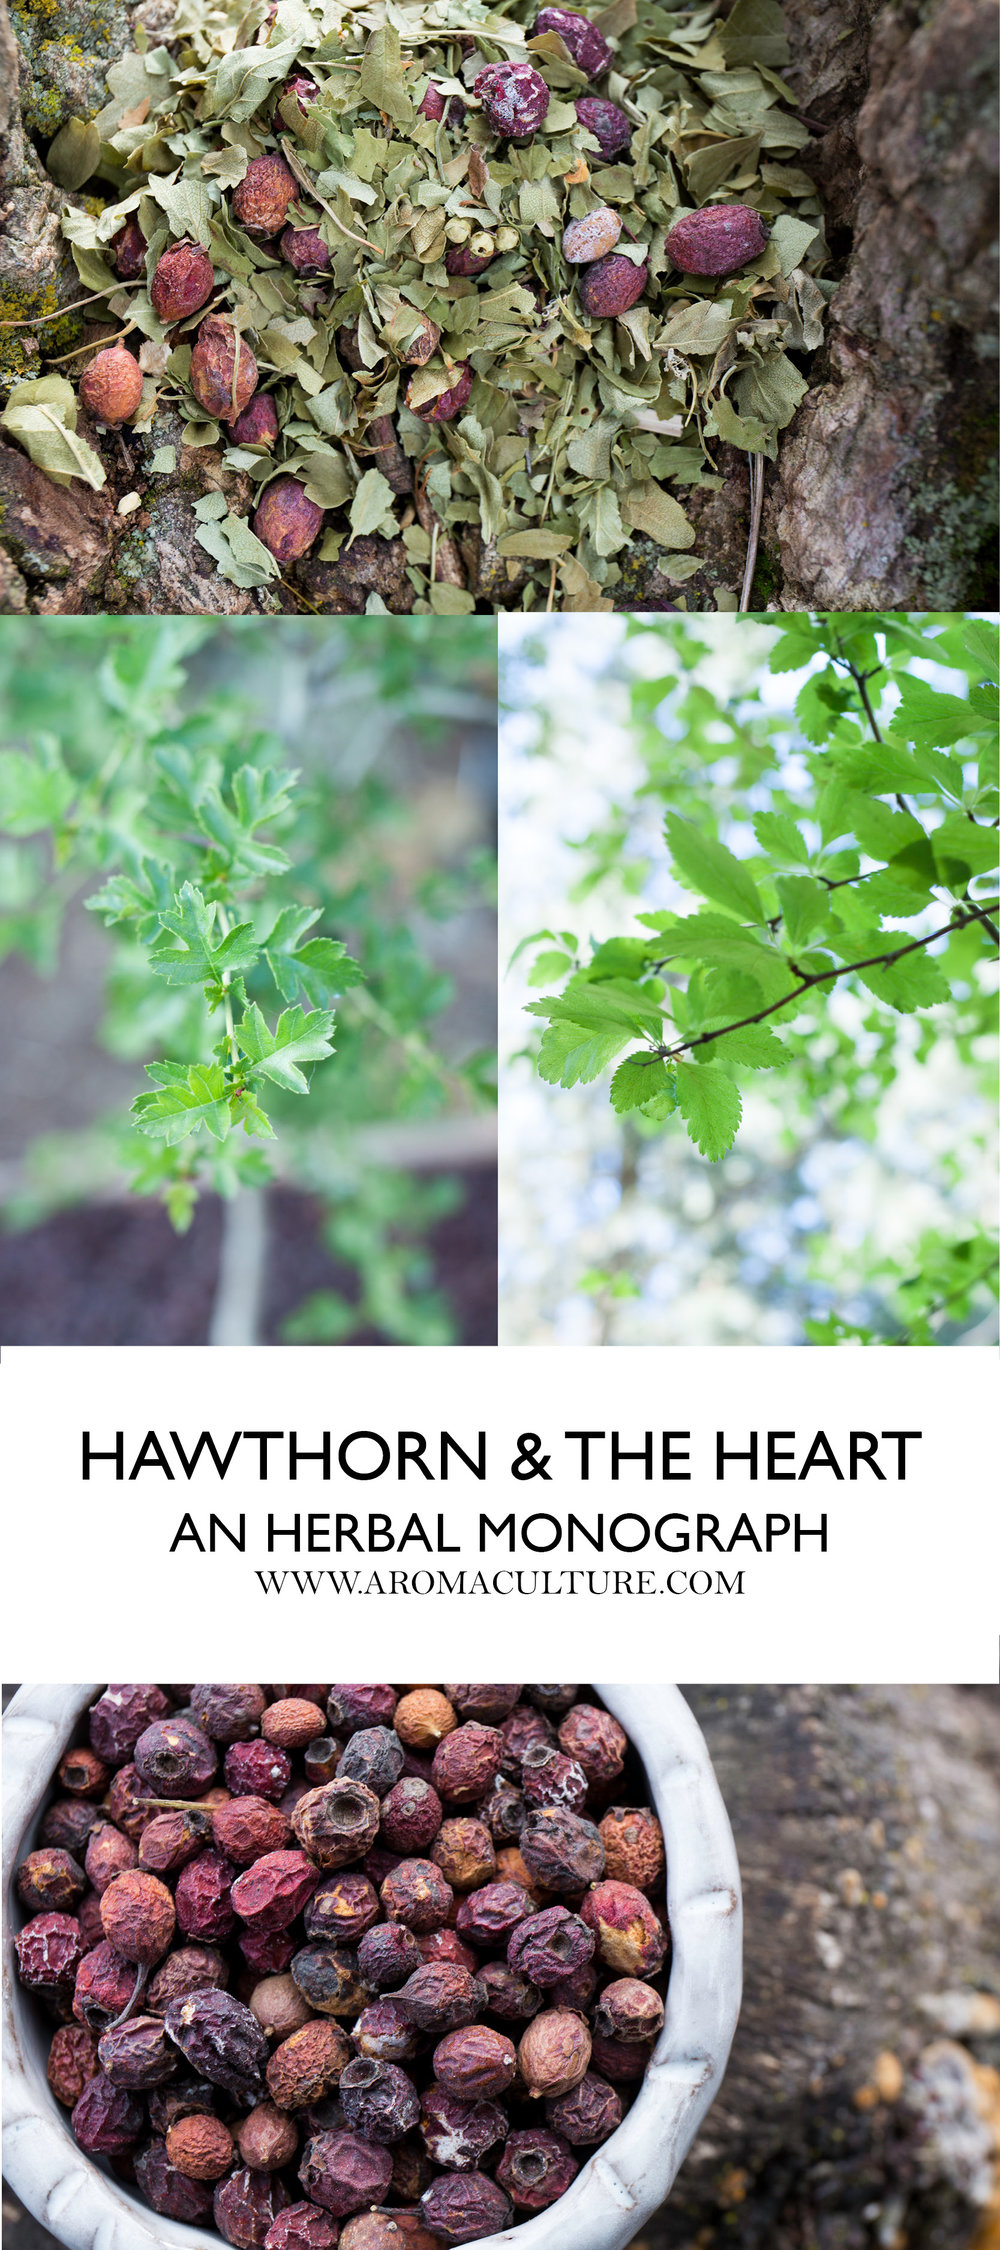 Hawthorn and heart health aromaculture.jpg